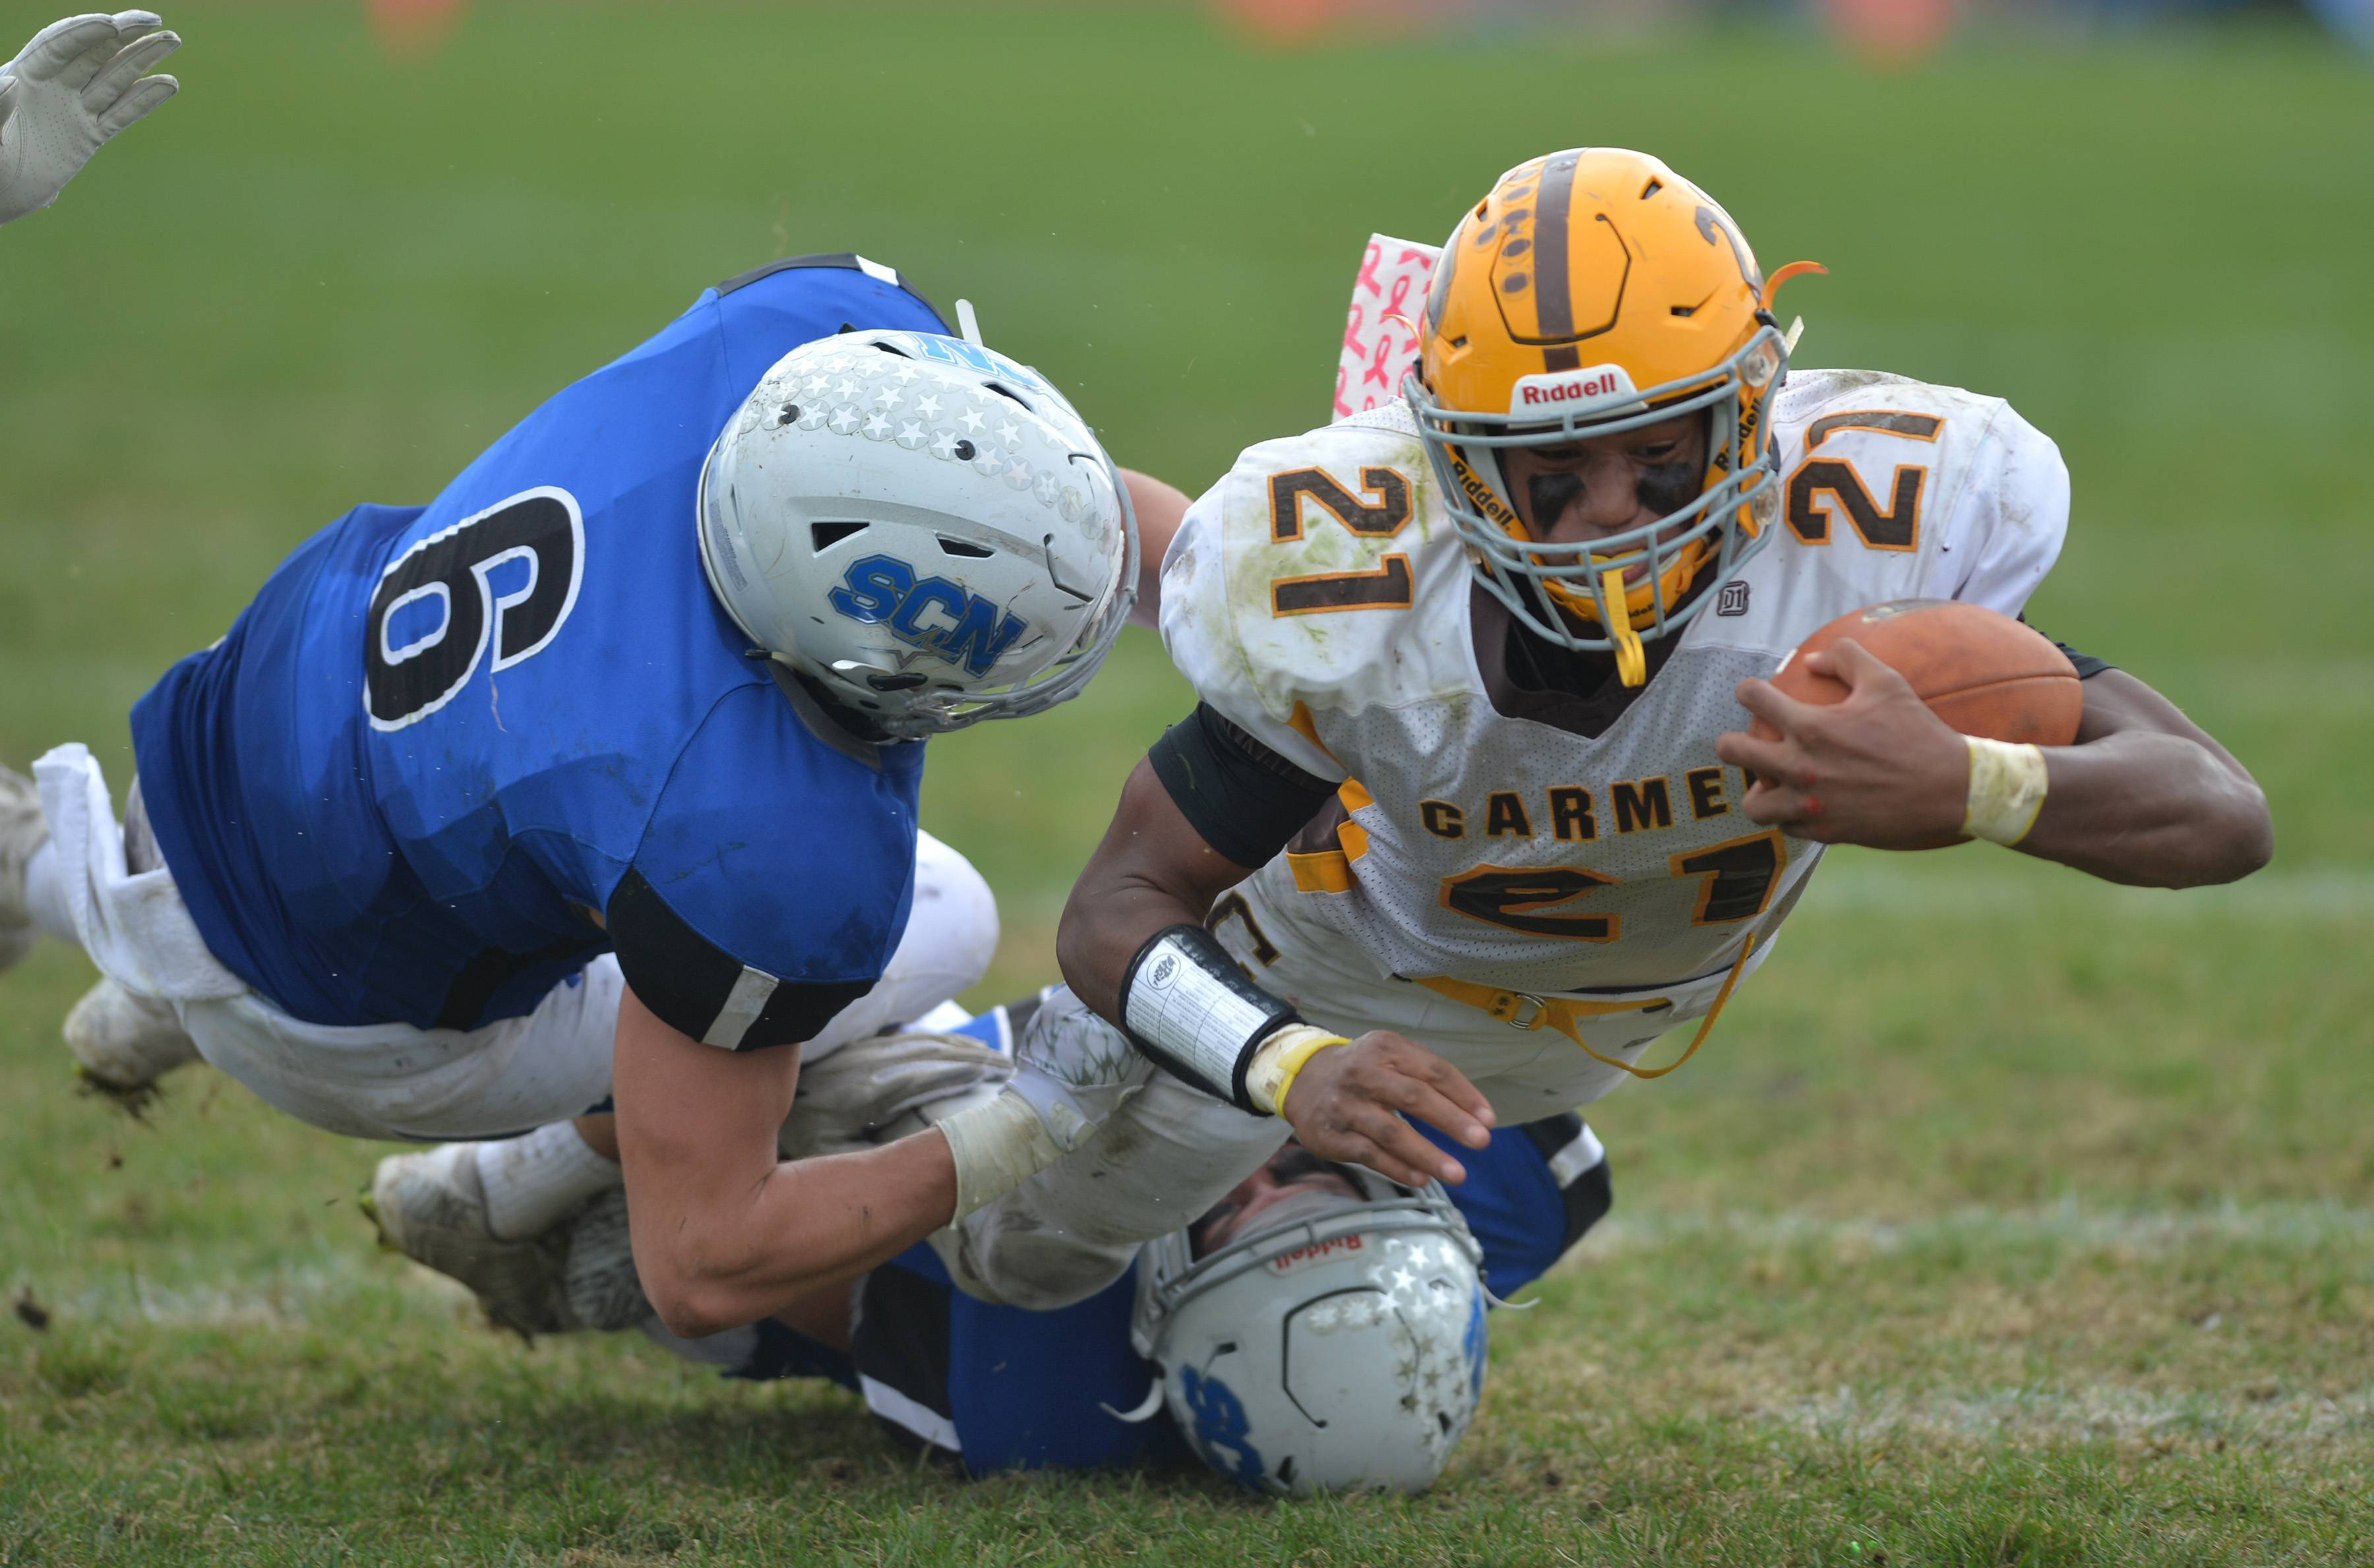 Carmel back Zaire Barnes lunges forward for extra yardagein the third quarter of their IHSA Class 7A playoff age Saturday in St. Charles. The North Stars advanced with a 31-24 double overtime win.